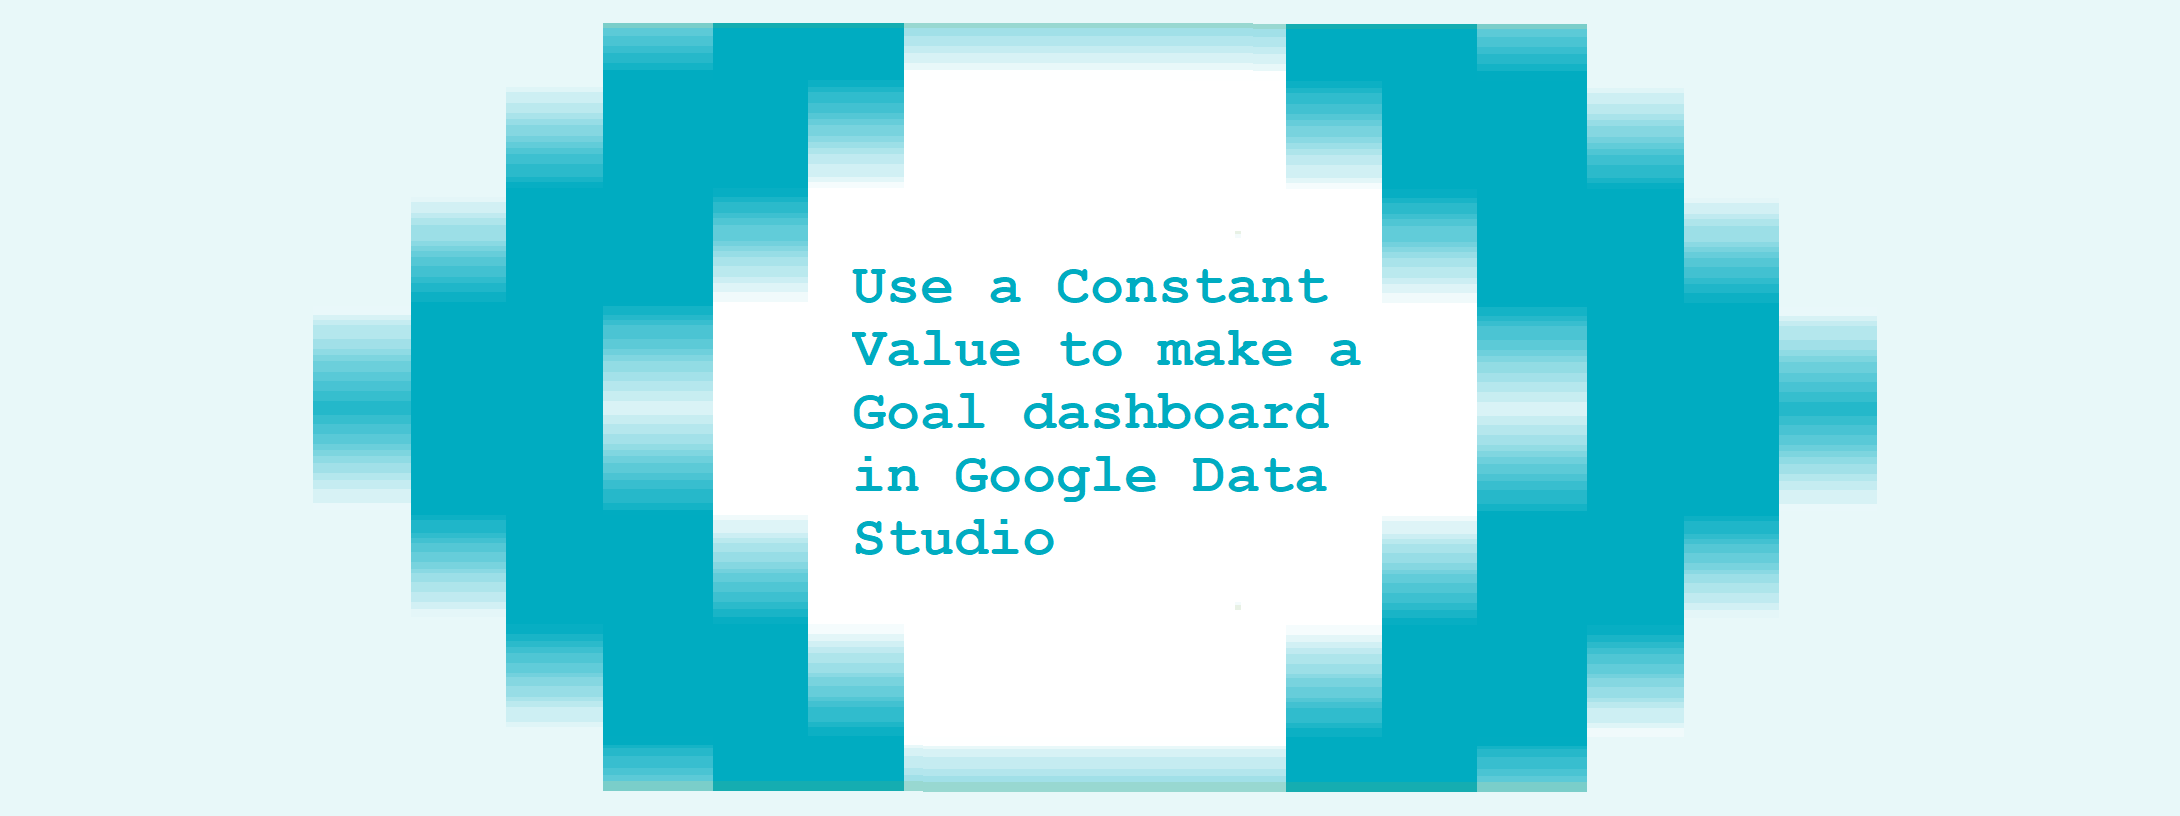 Use a Constant Value to make a Goal dashboard in Google Data Studio